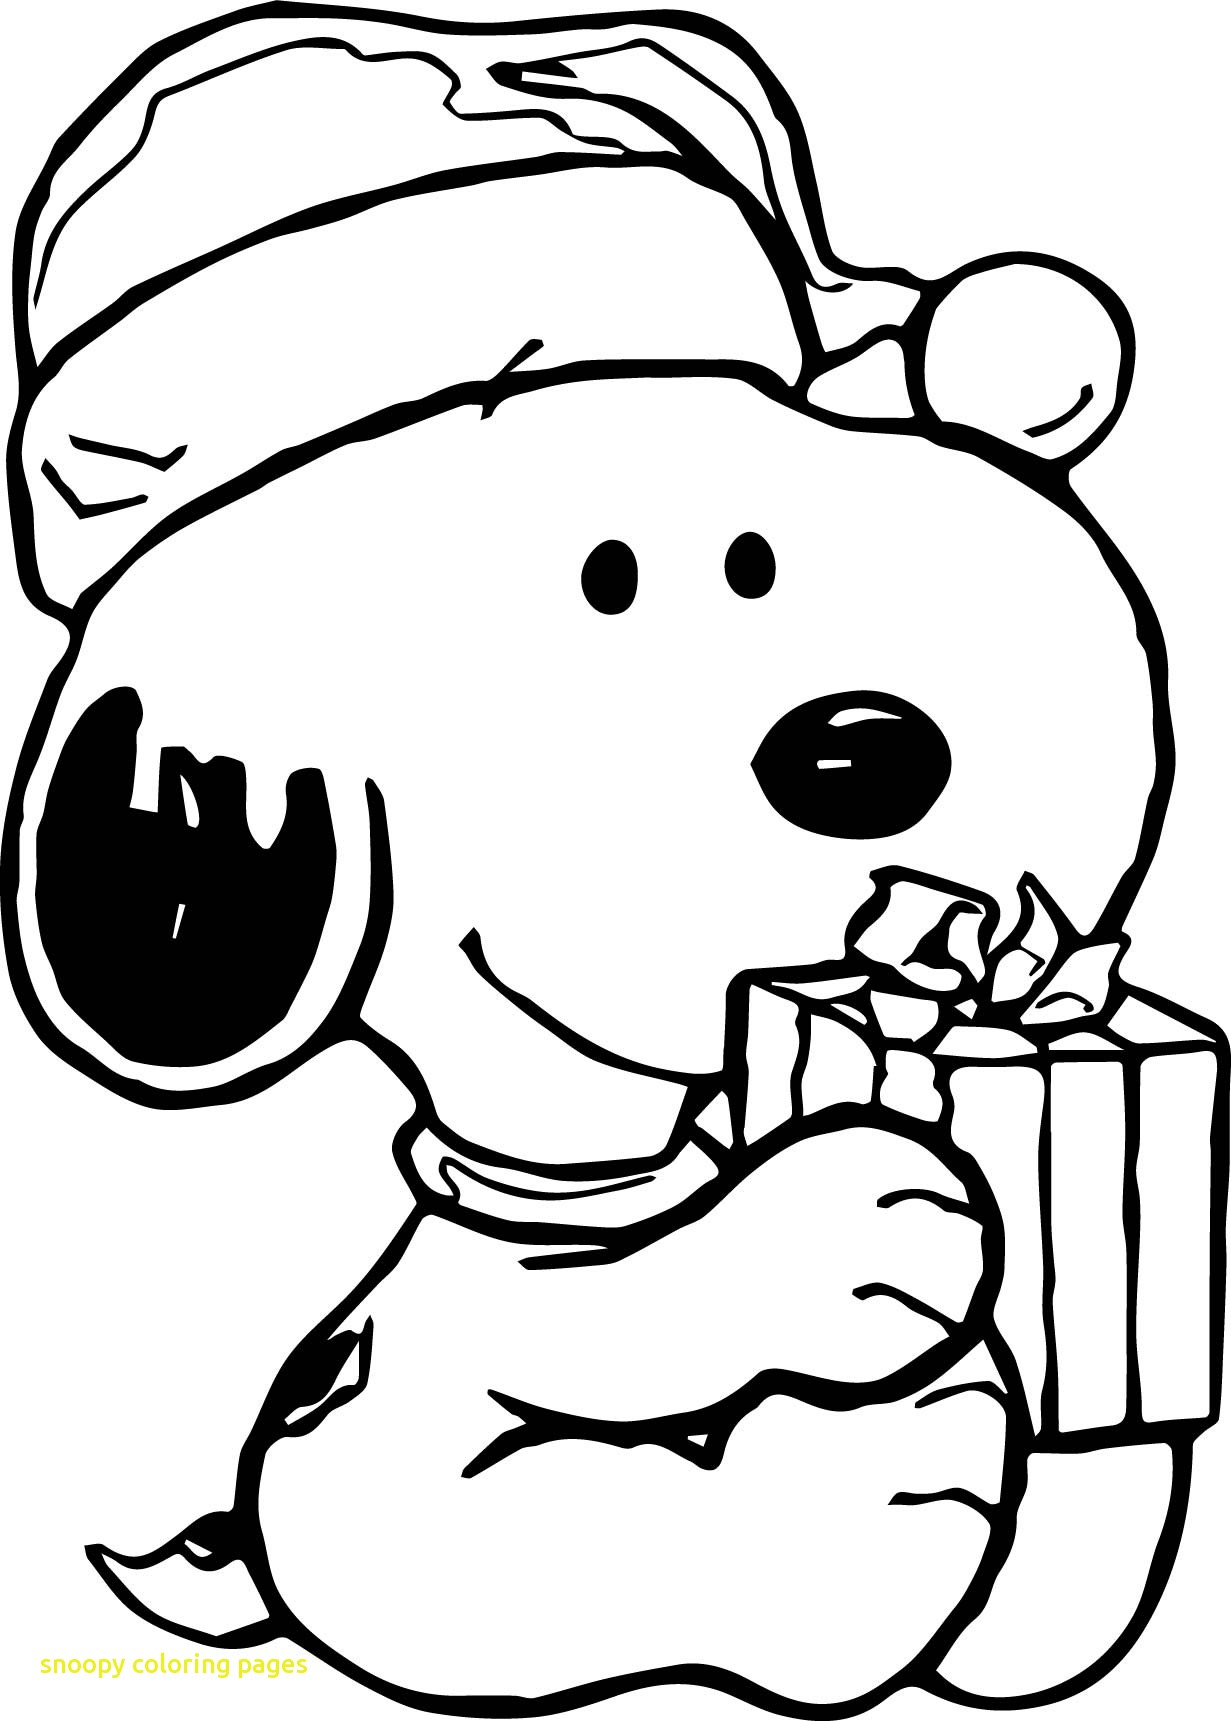 1231x1721 Snoopy Coloring Pages With Baby Christmas Page